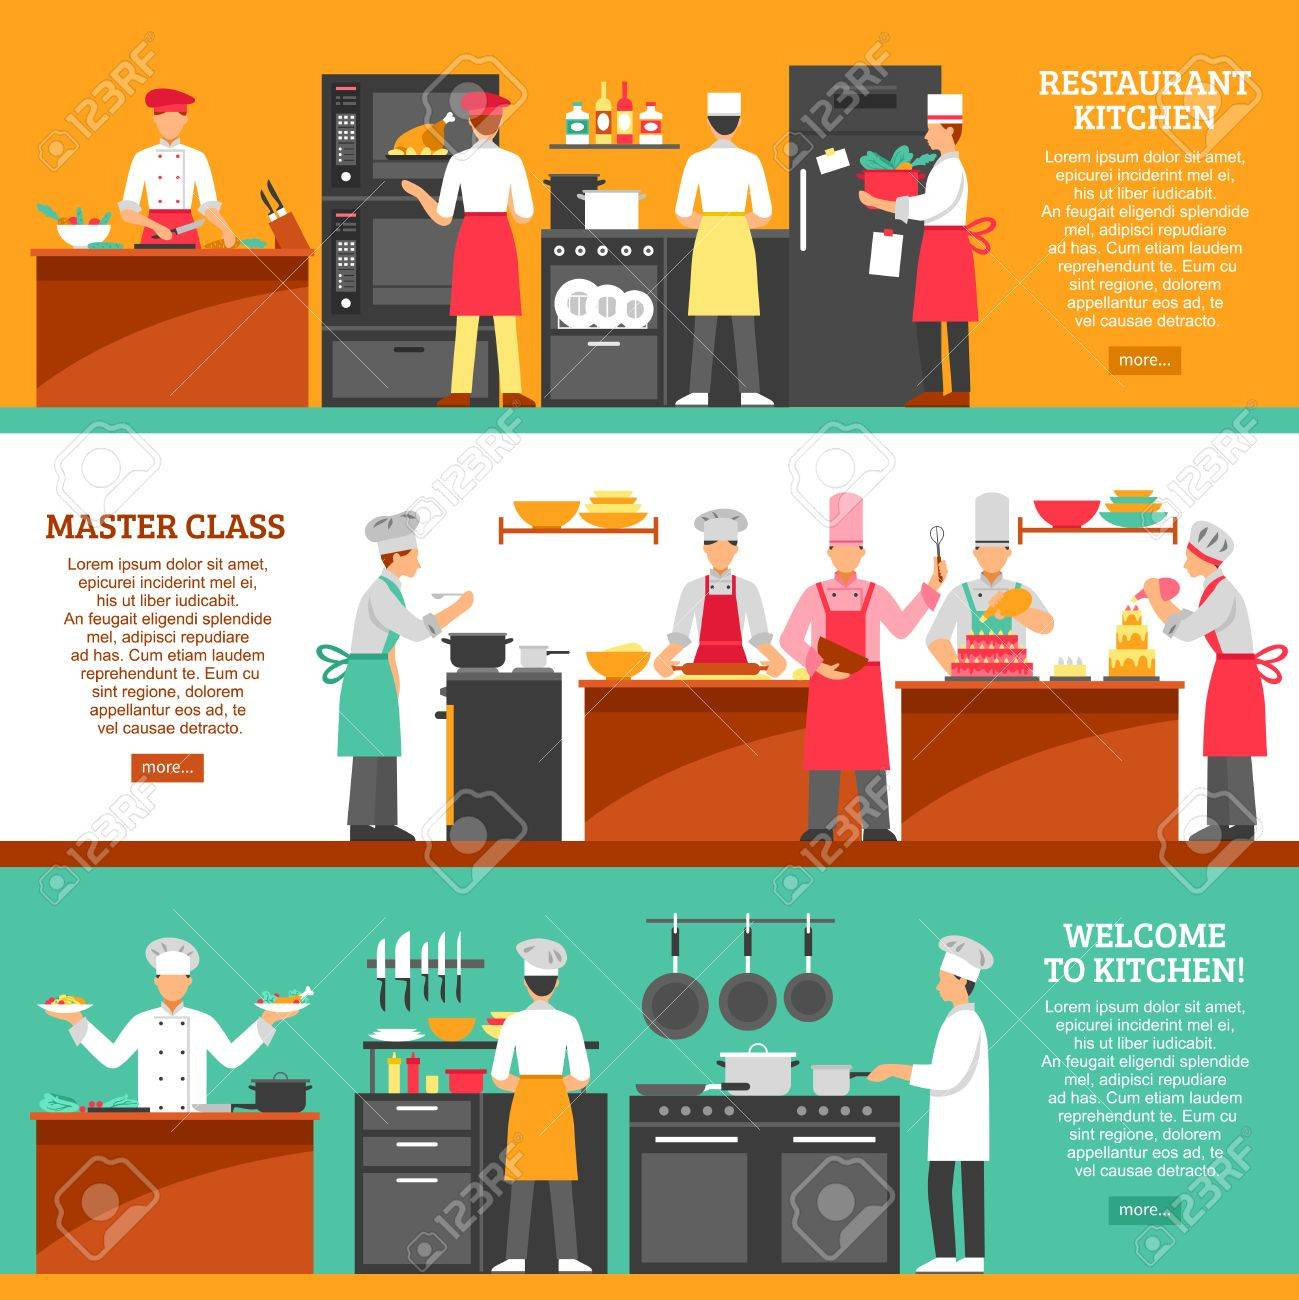 Professional cooking horizontal banners set with restaurant kitchen and master class compositions flat vector illustration - 64969243